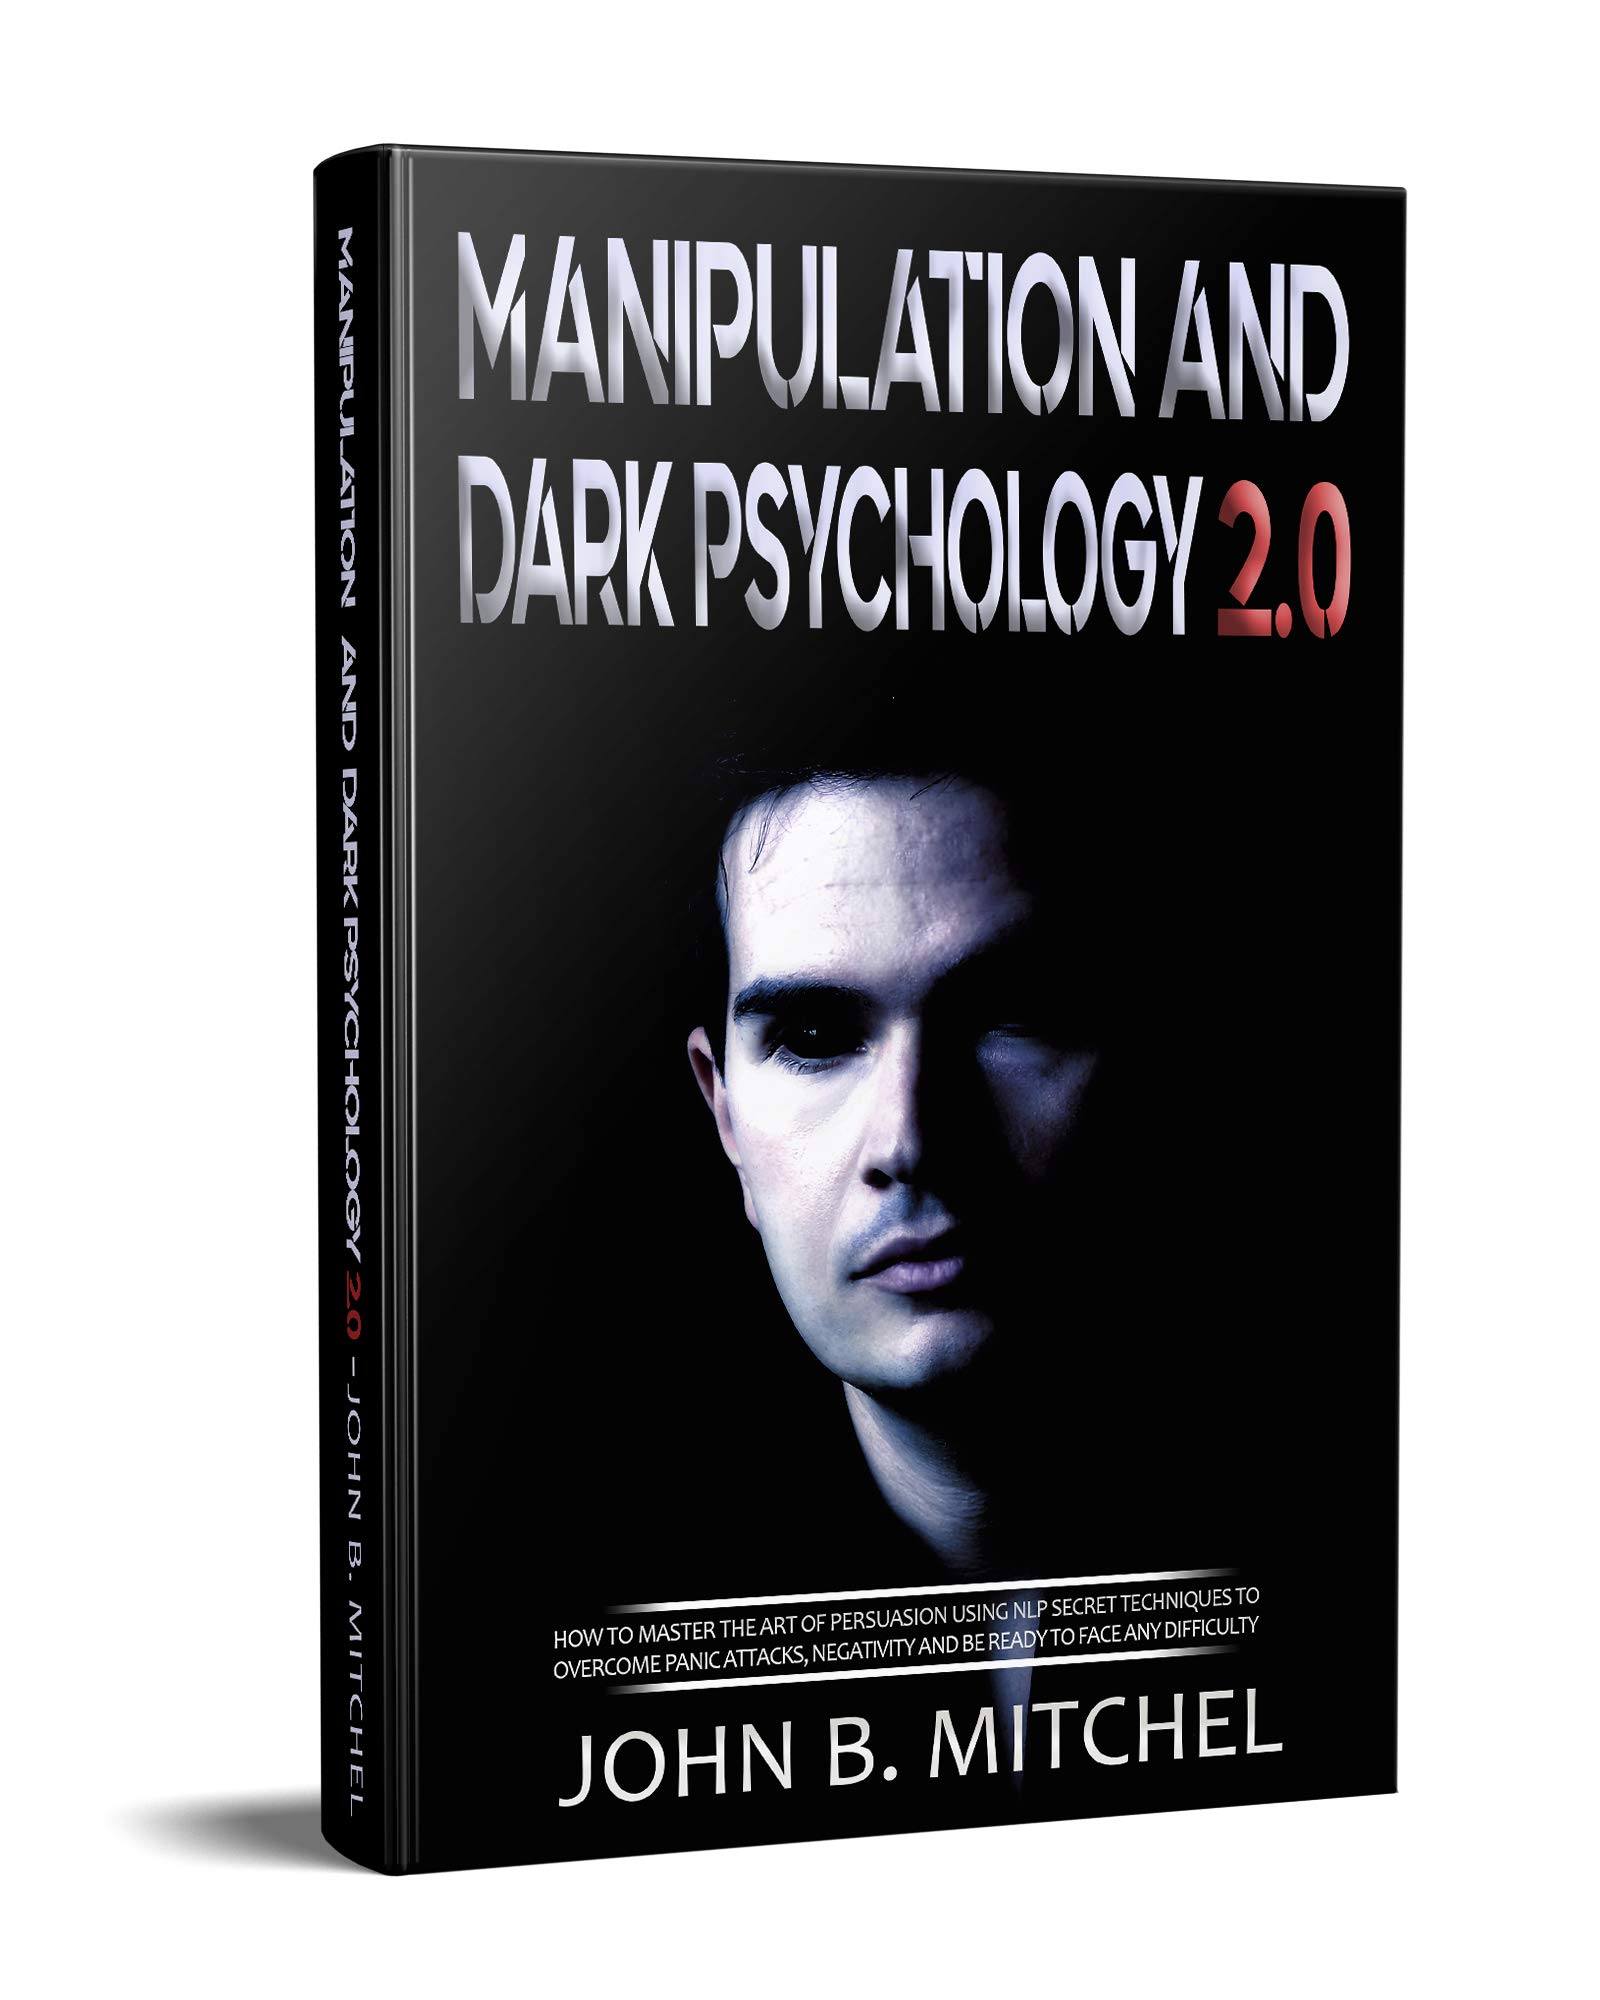 Manipulation And Dark Psychology: The art of persuasion with the techniques and the secrets of NLP, to overcome the panic attacks, negativity and be ready to face any difficulty